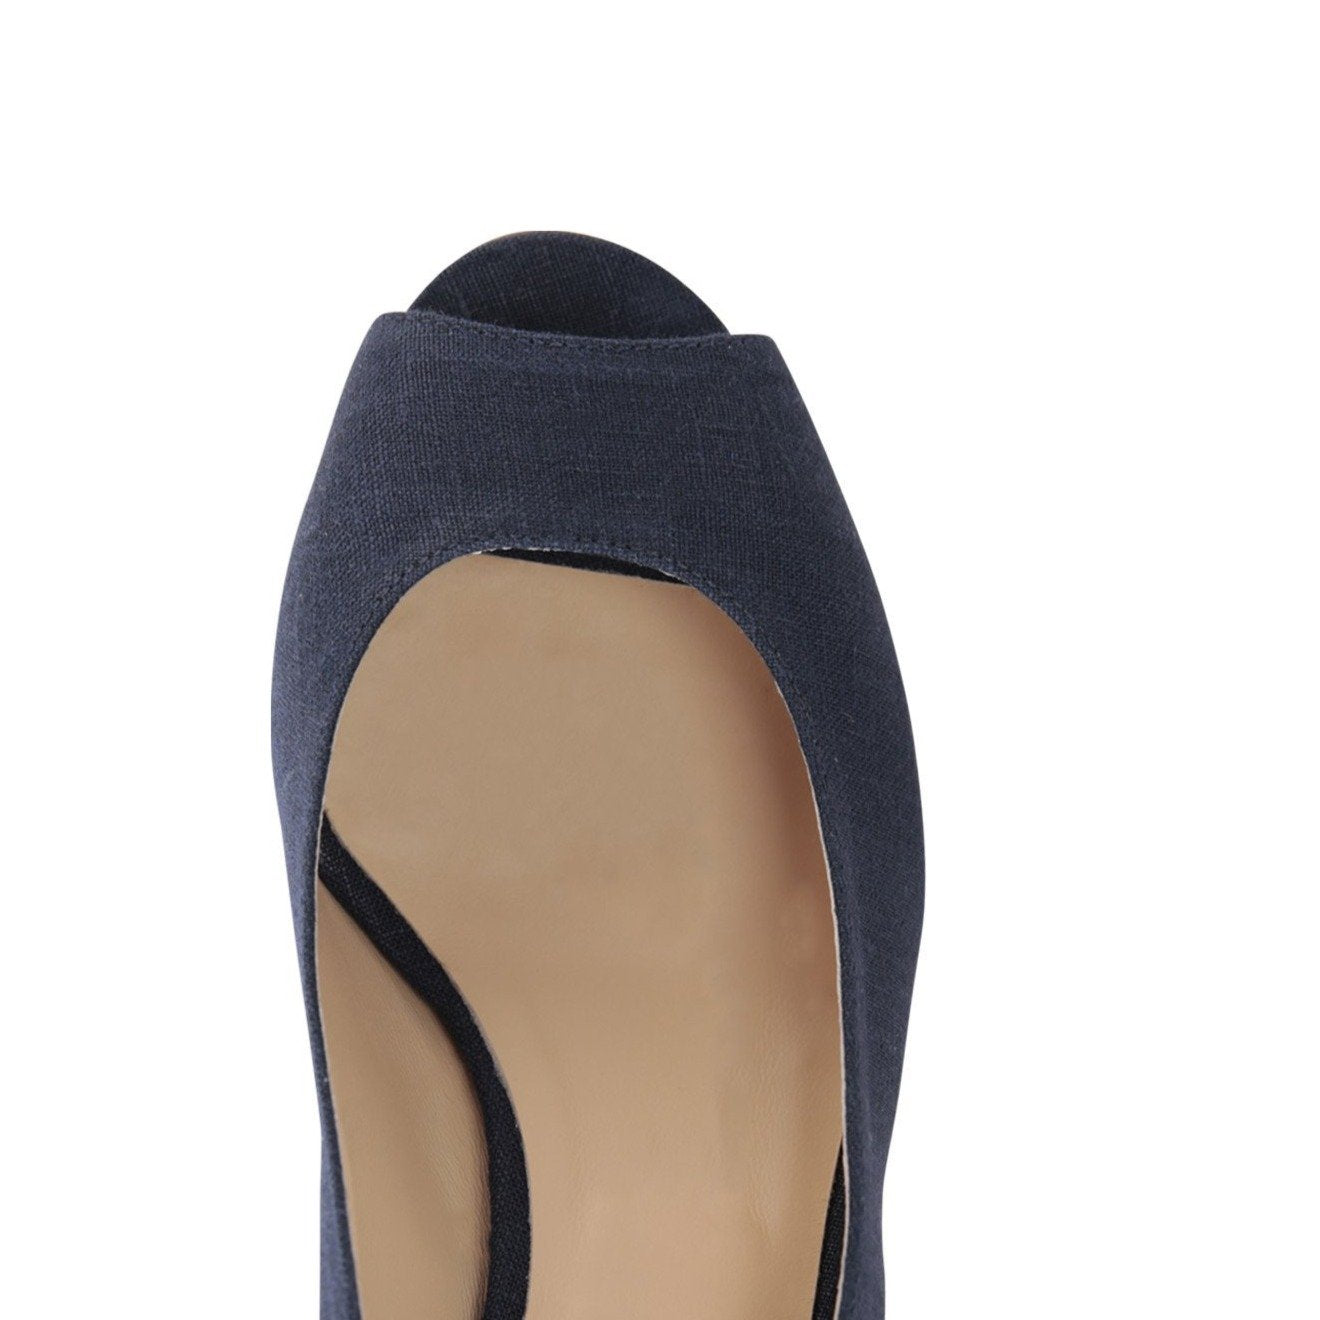 SARDINIA - Textile Canvas Midnight, VIAJIYU - Women's Hand Made Sustainable Luxury Shoes. Made in Italy. Made to Order.